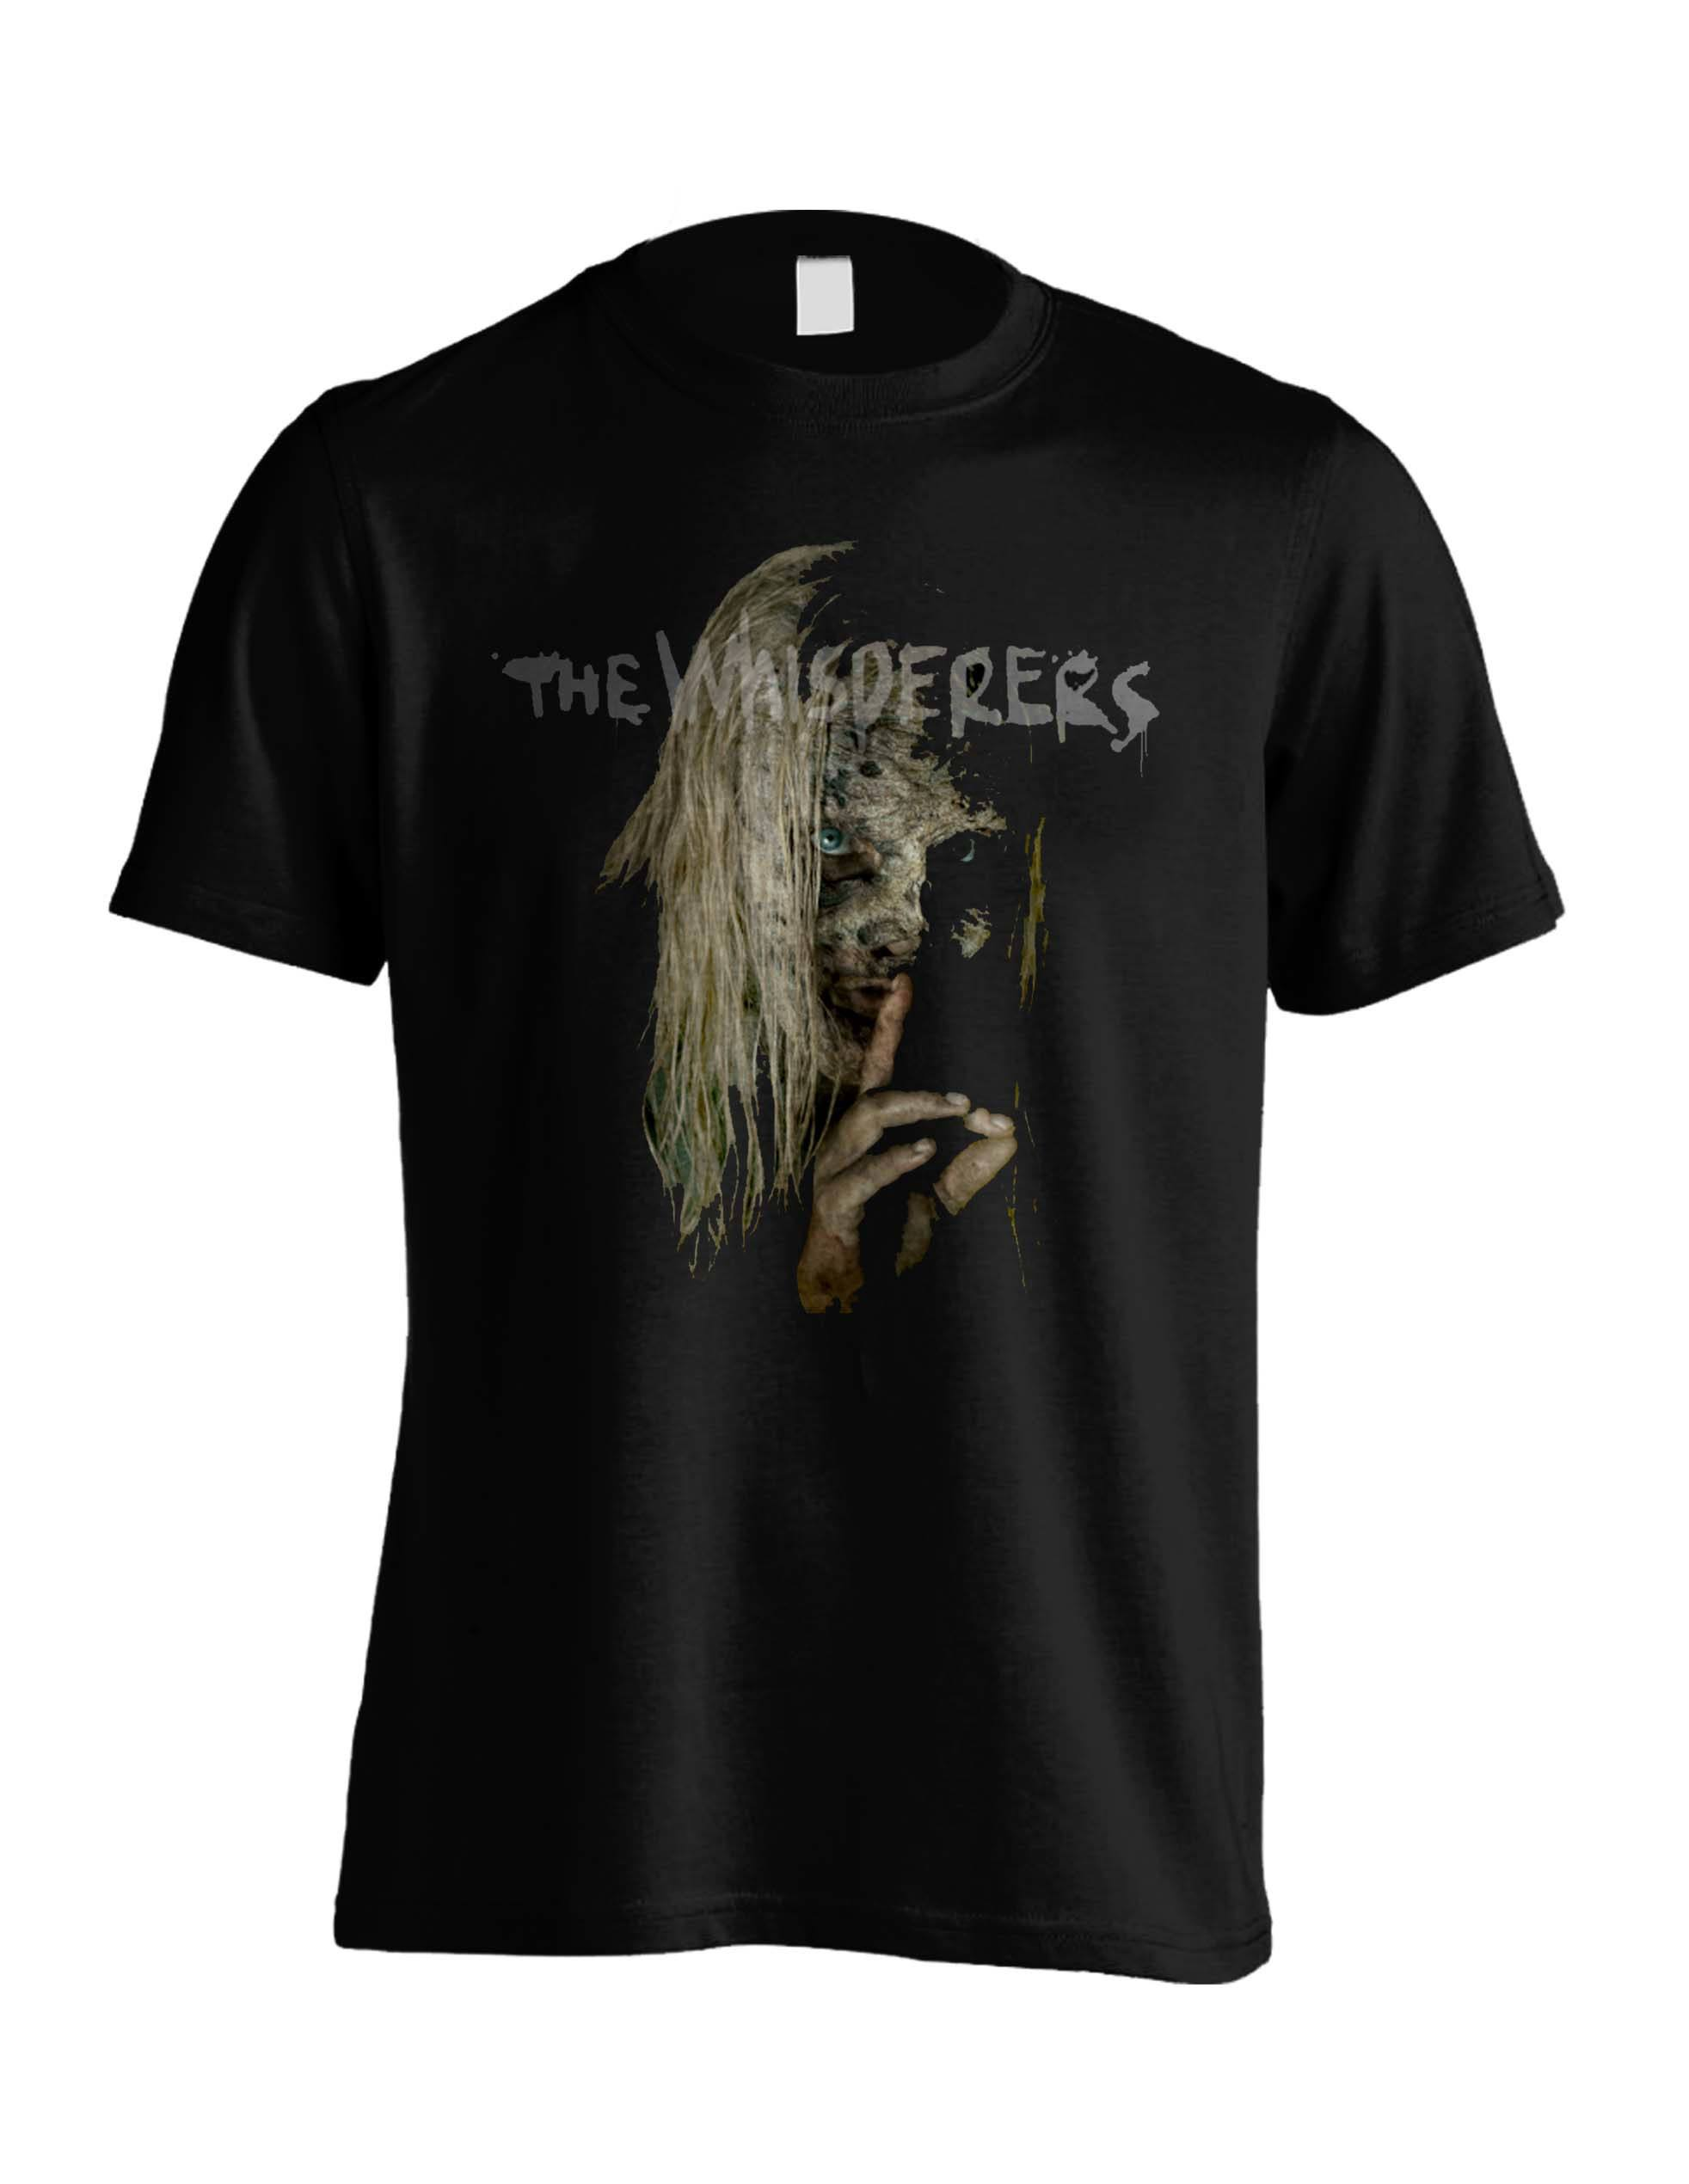 Walking Dead T-Shirt The Whisperers  Size L